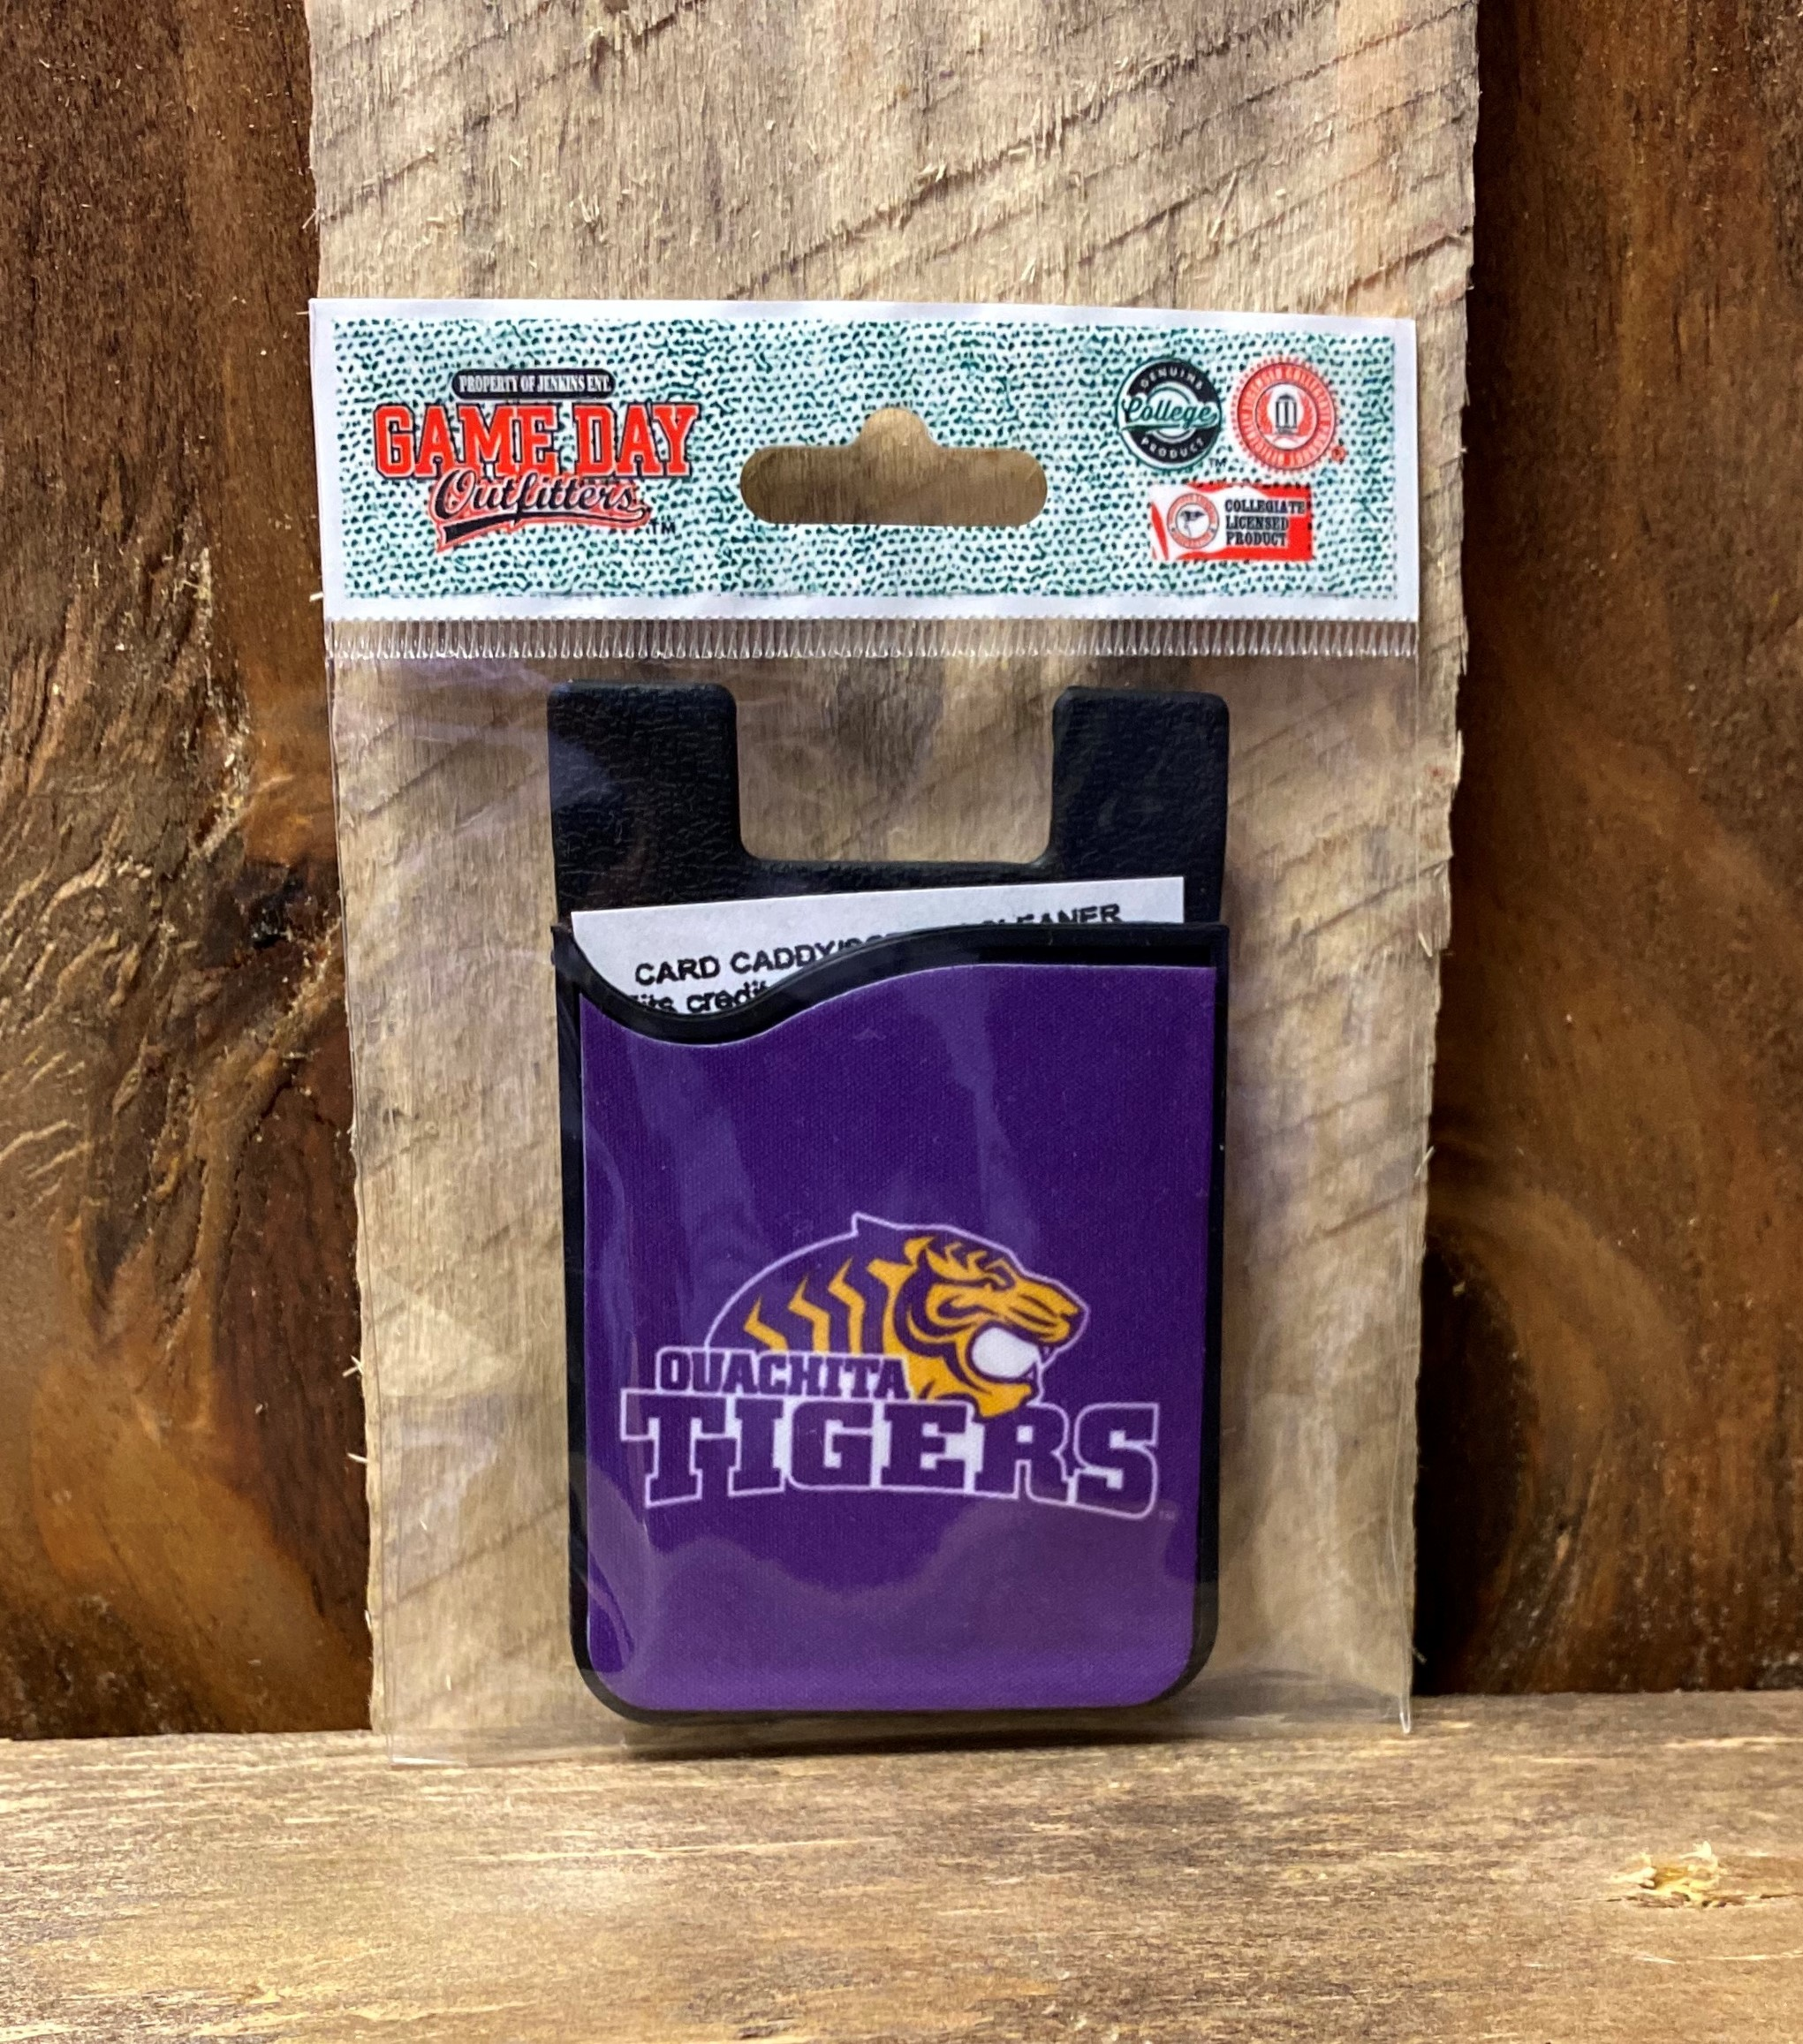 OUACHITA TIGERS CELL PHONE CARD HOLDER W/ SCREEN CLEANER